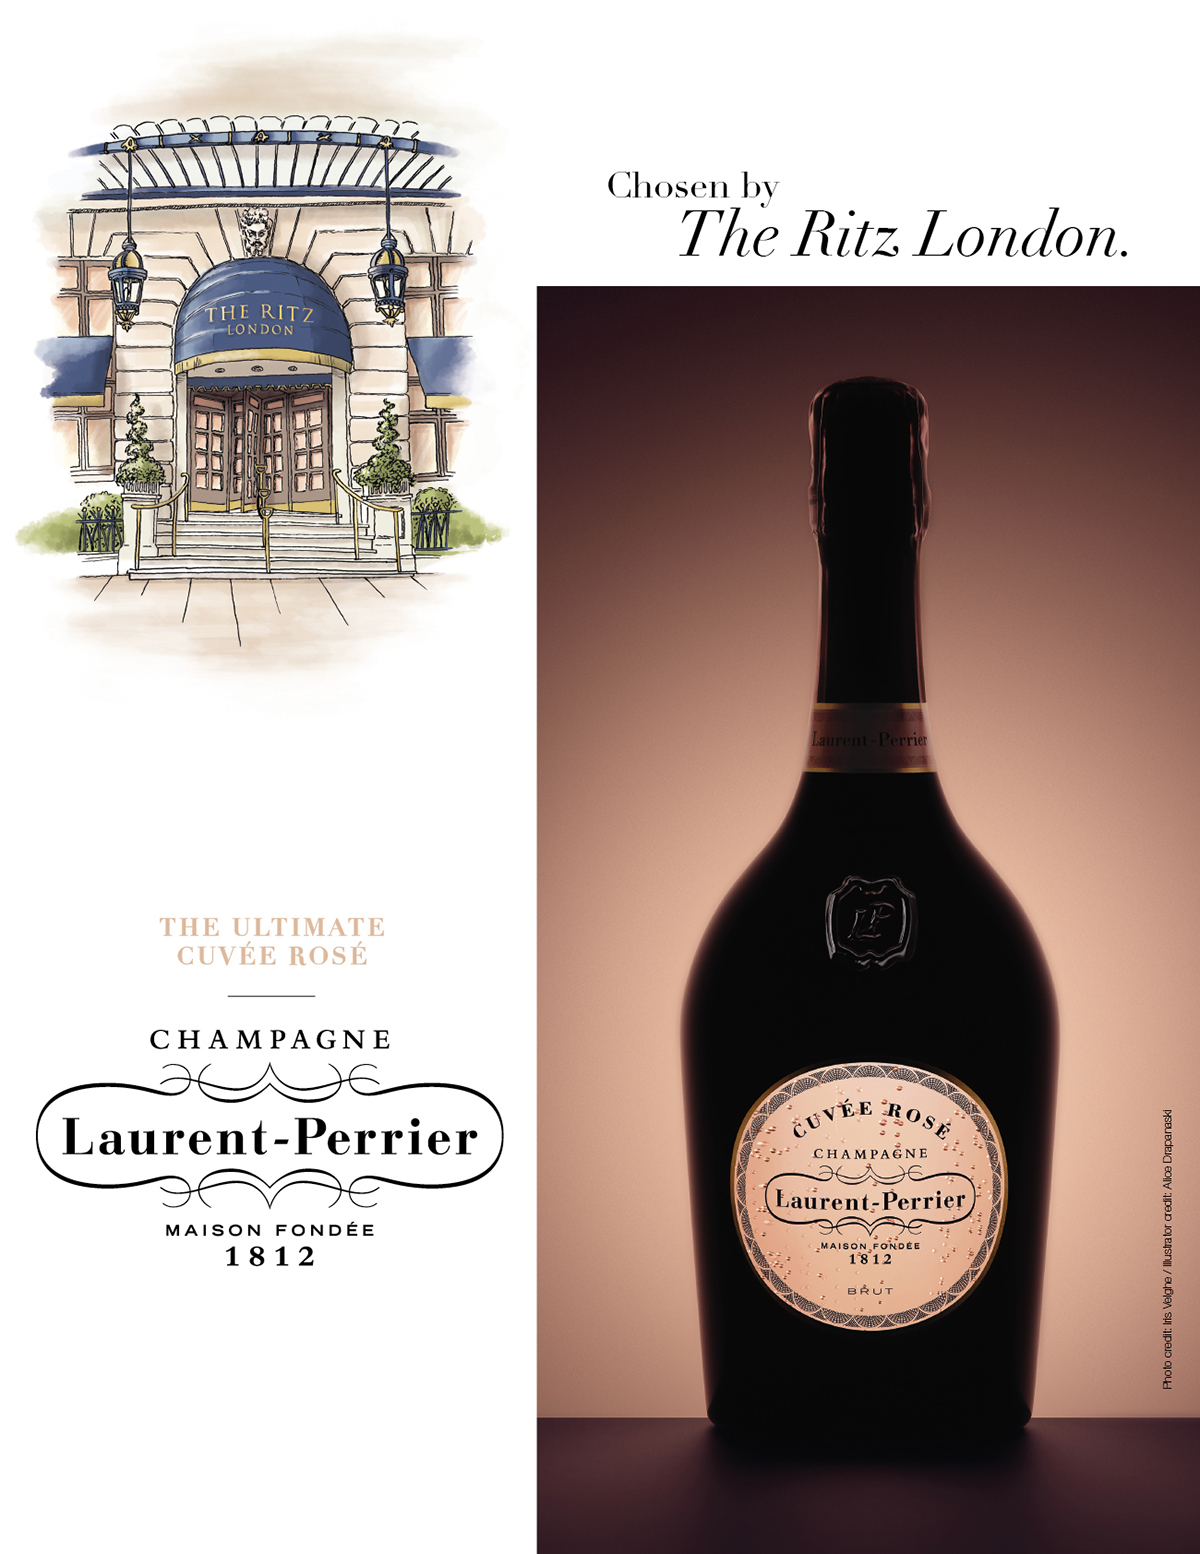 laurent-perrier-champagne-publicite-marketing-ads-cuvee-rose-tour-argent-meurice-gstaad-palace-ritz-dorchester-gavroche-agence-publicis-conseil-4